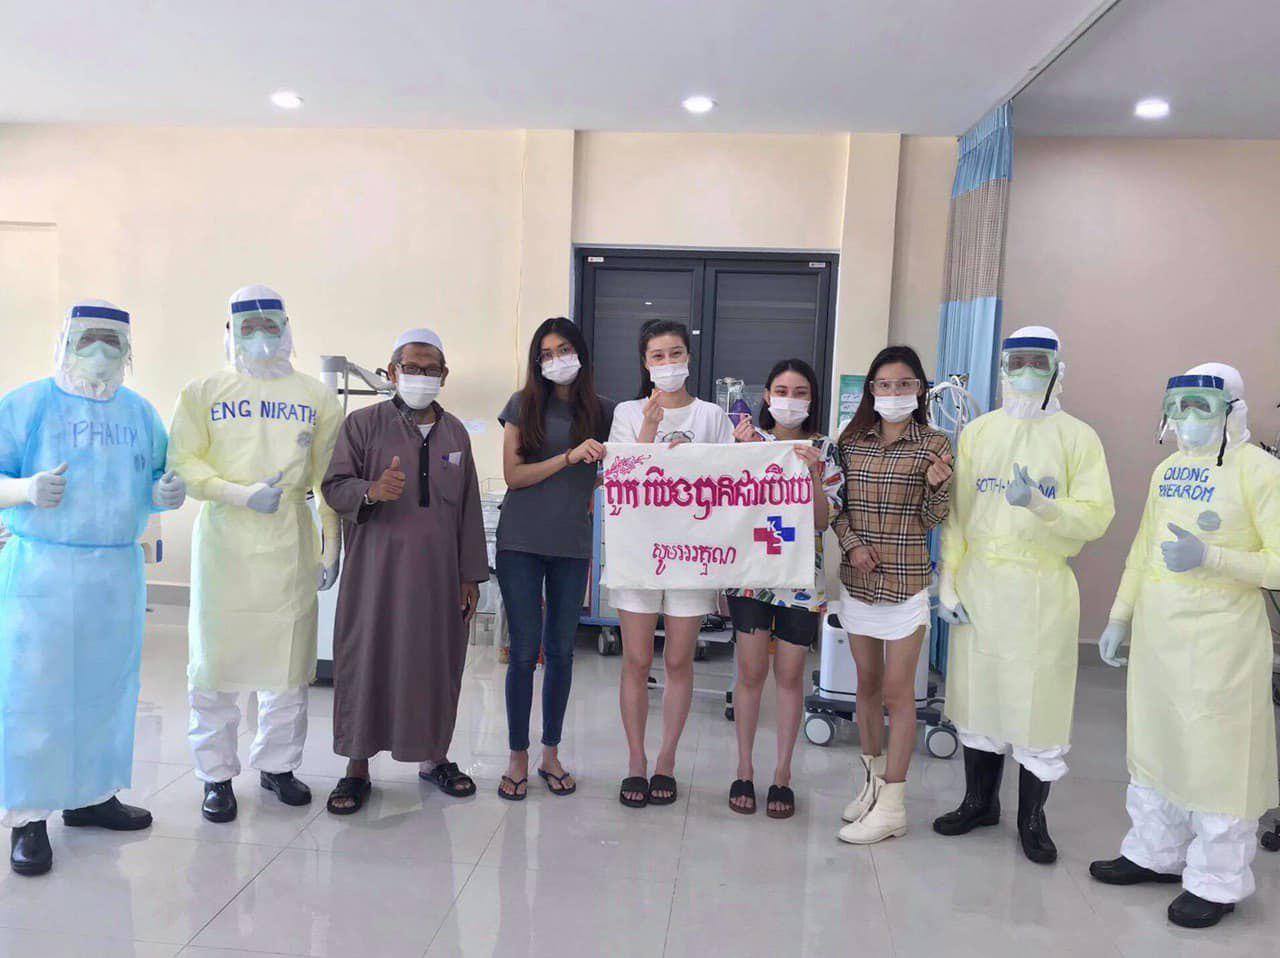 One year on from the first COVID-19 case in Cambodia